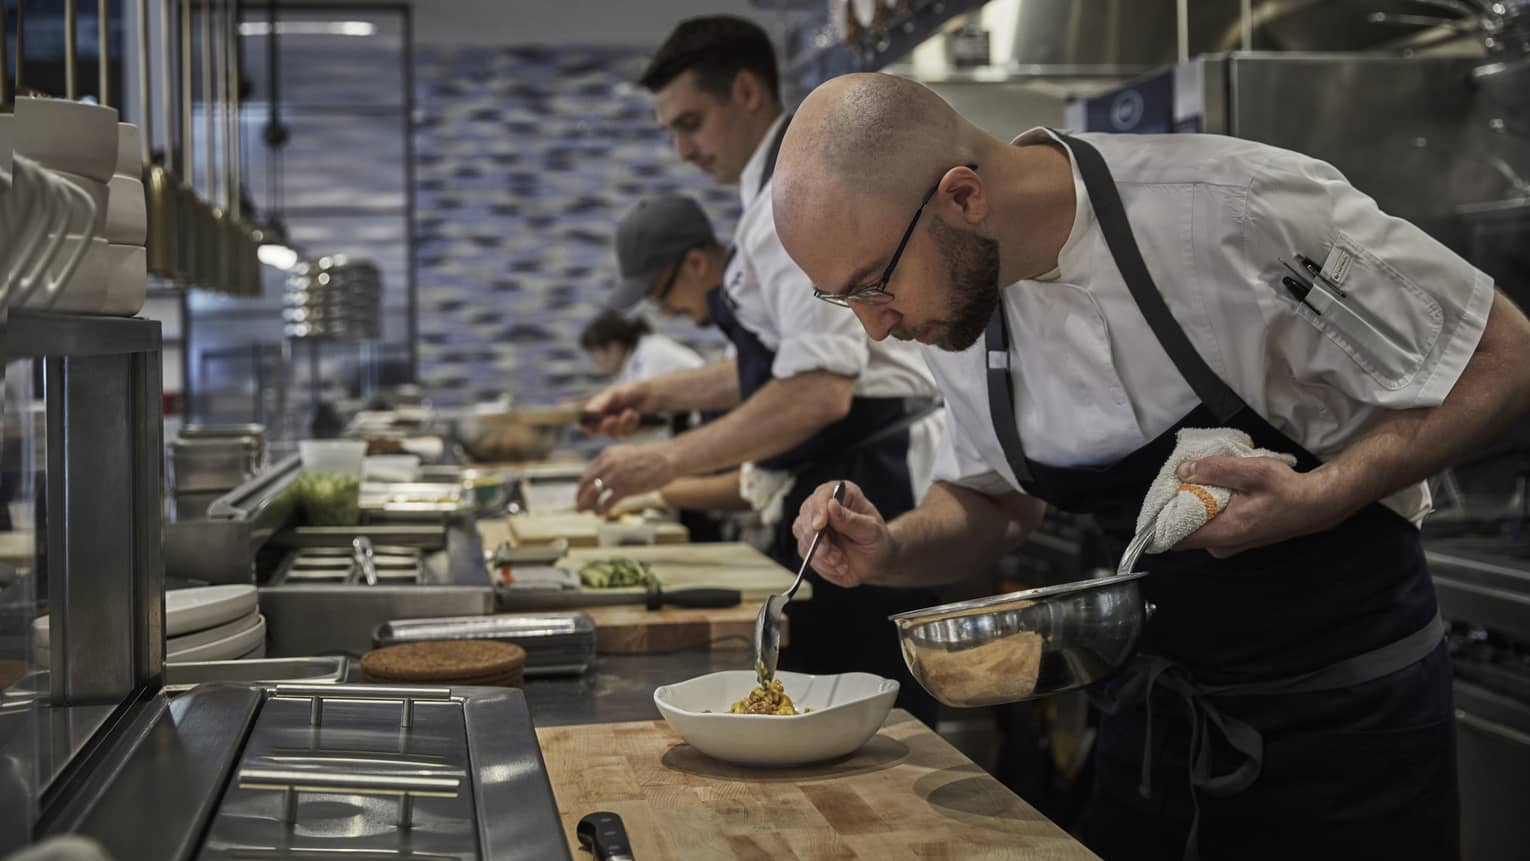 Four Seasons chefs prepare a delicious meal in the kitchen of Four Seasons Philadelphia